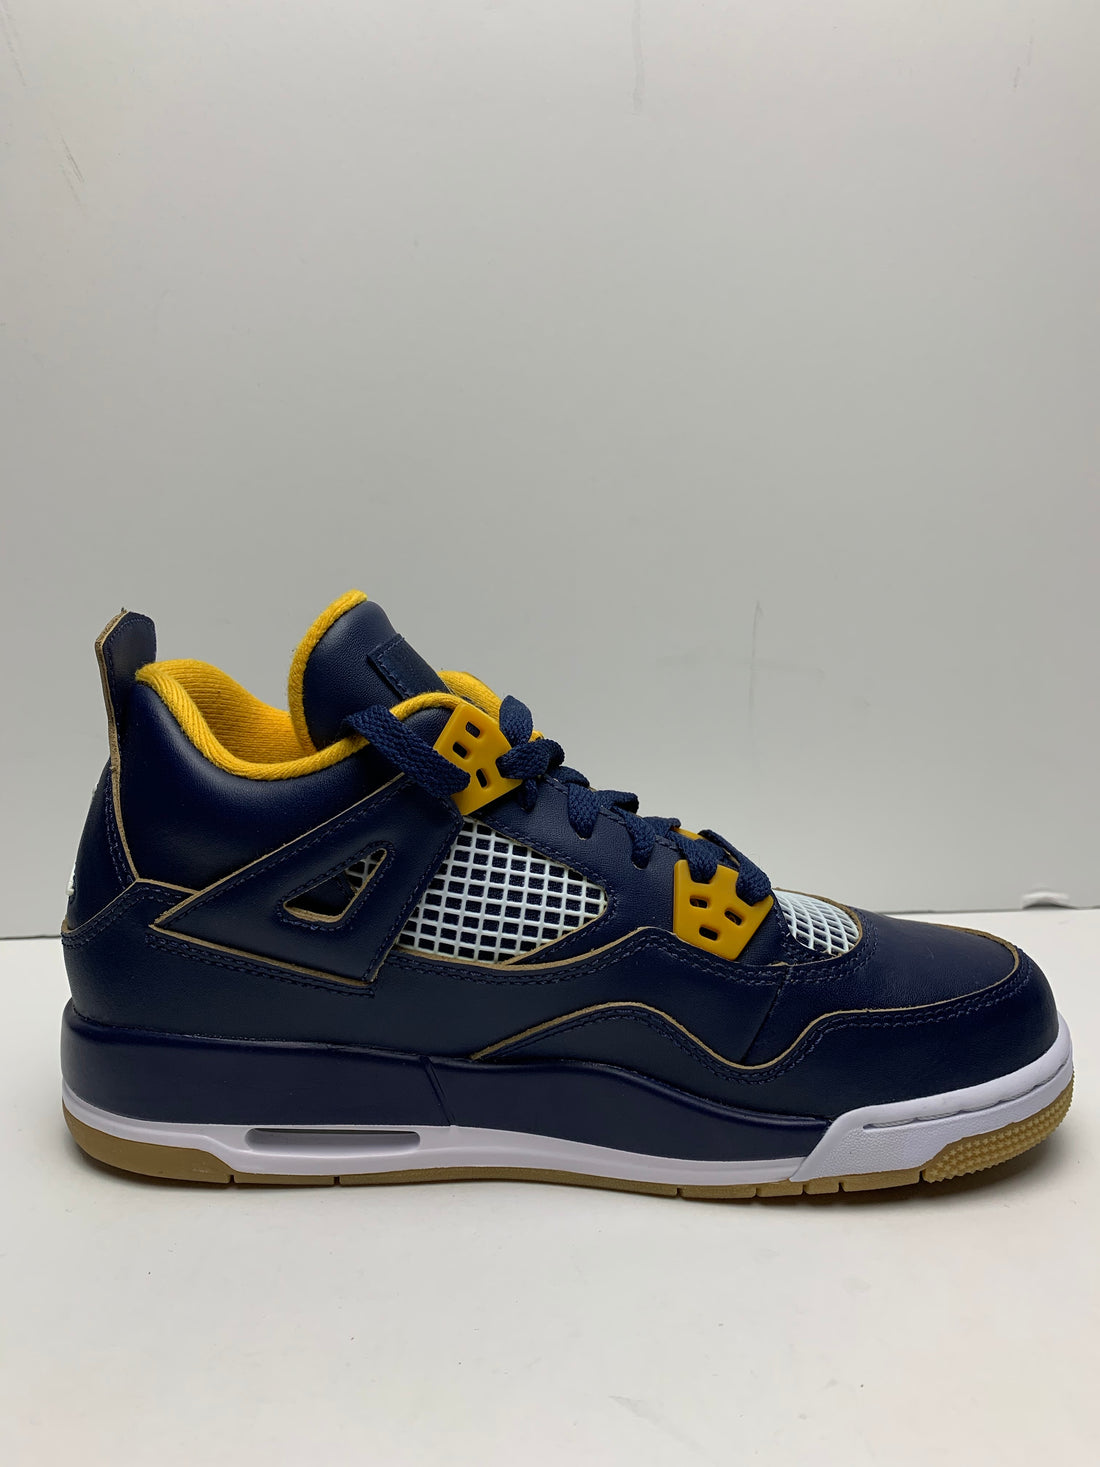 Jordan 4 Retro Dunk From Above (GS)